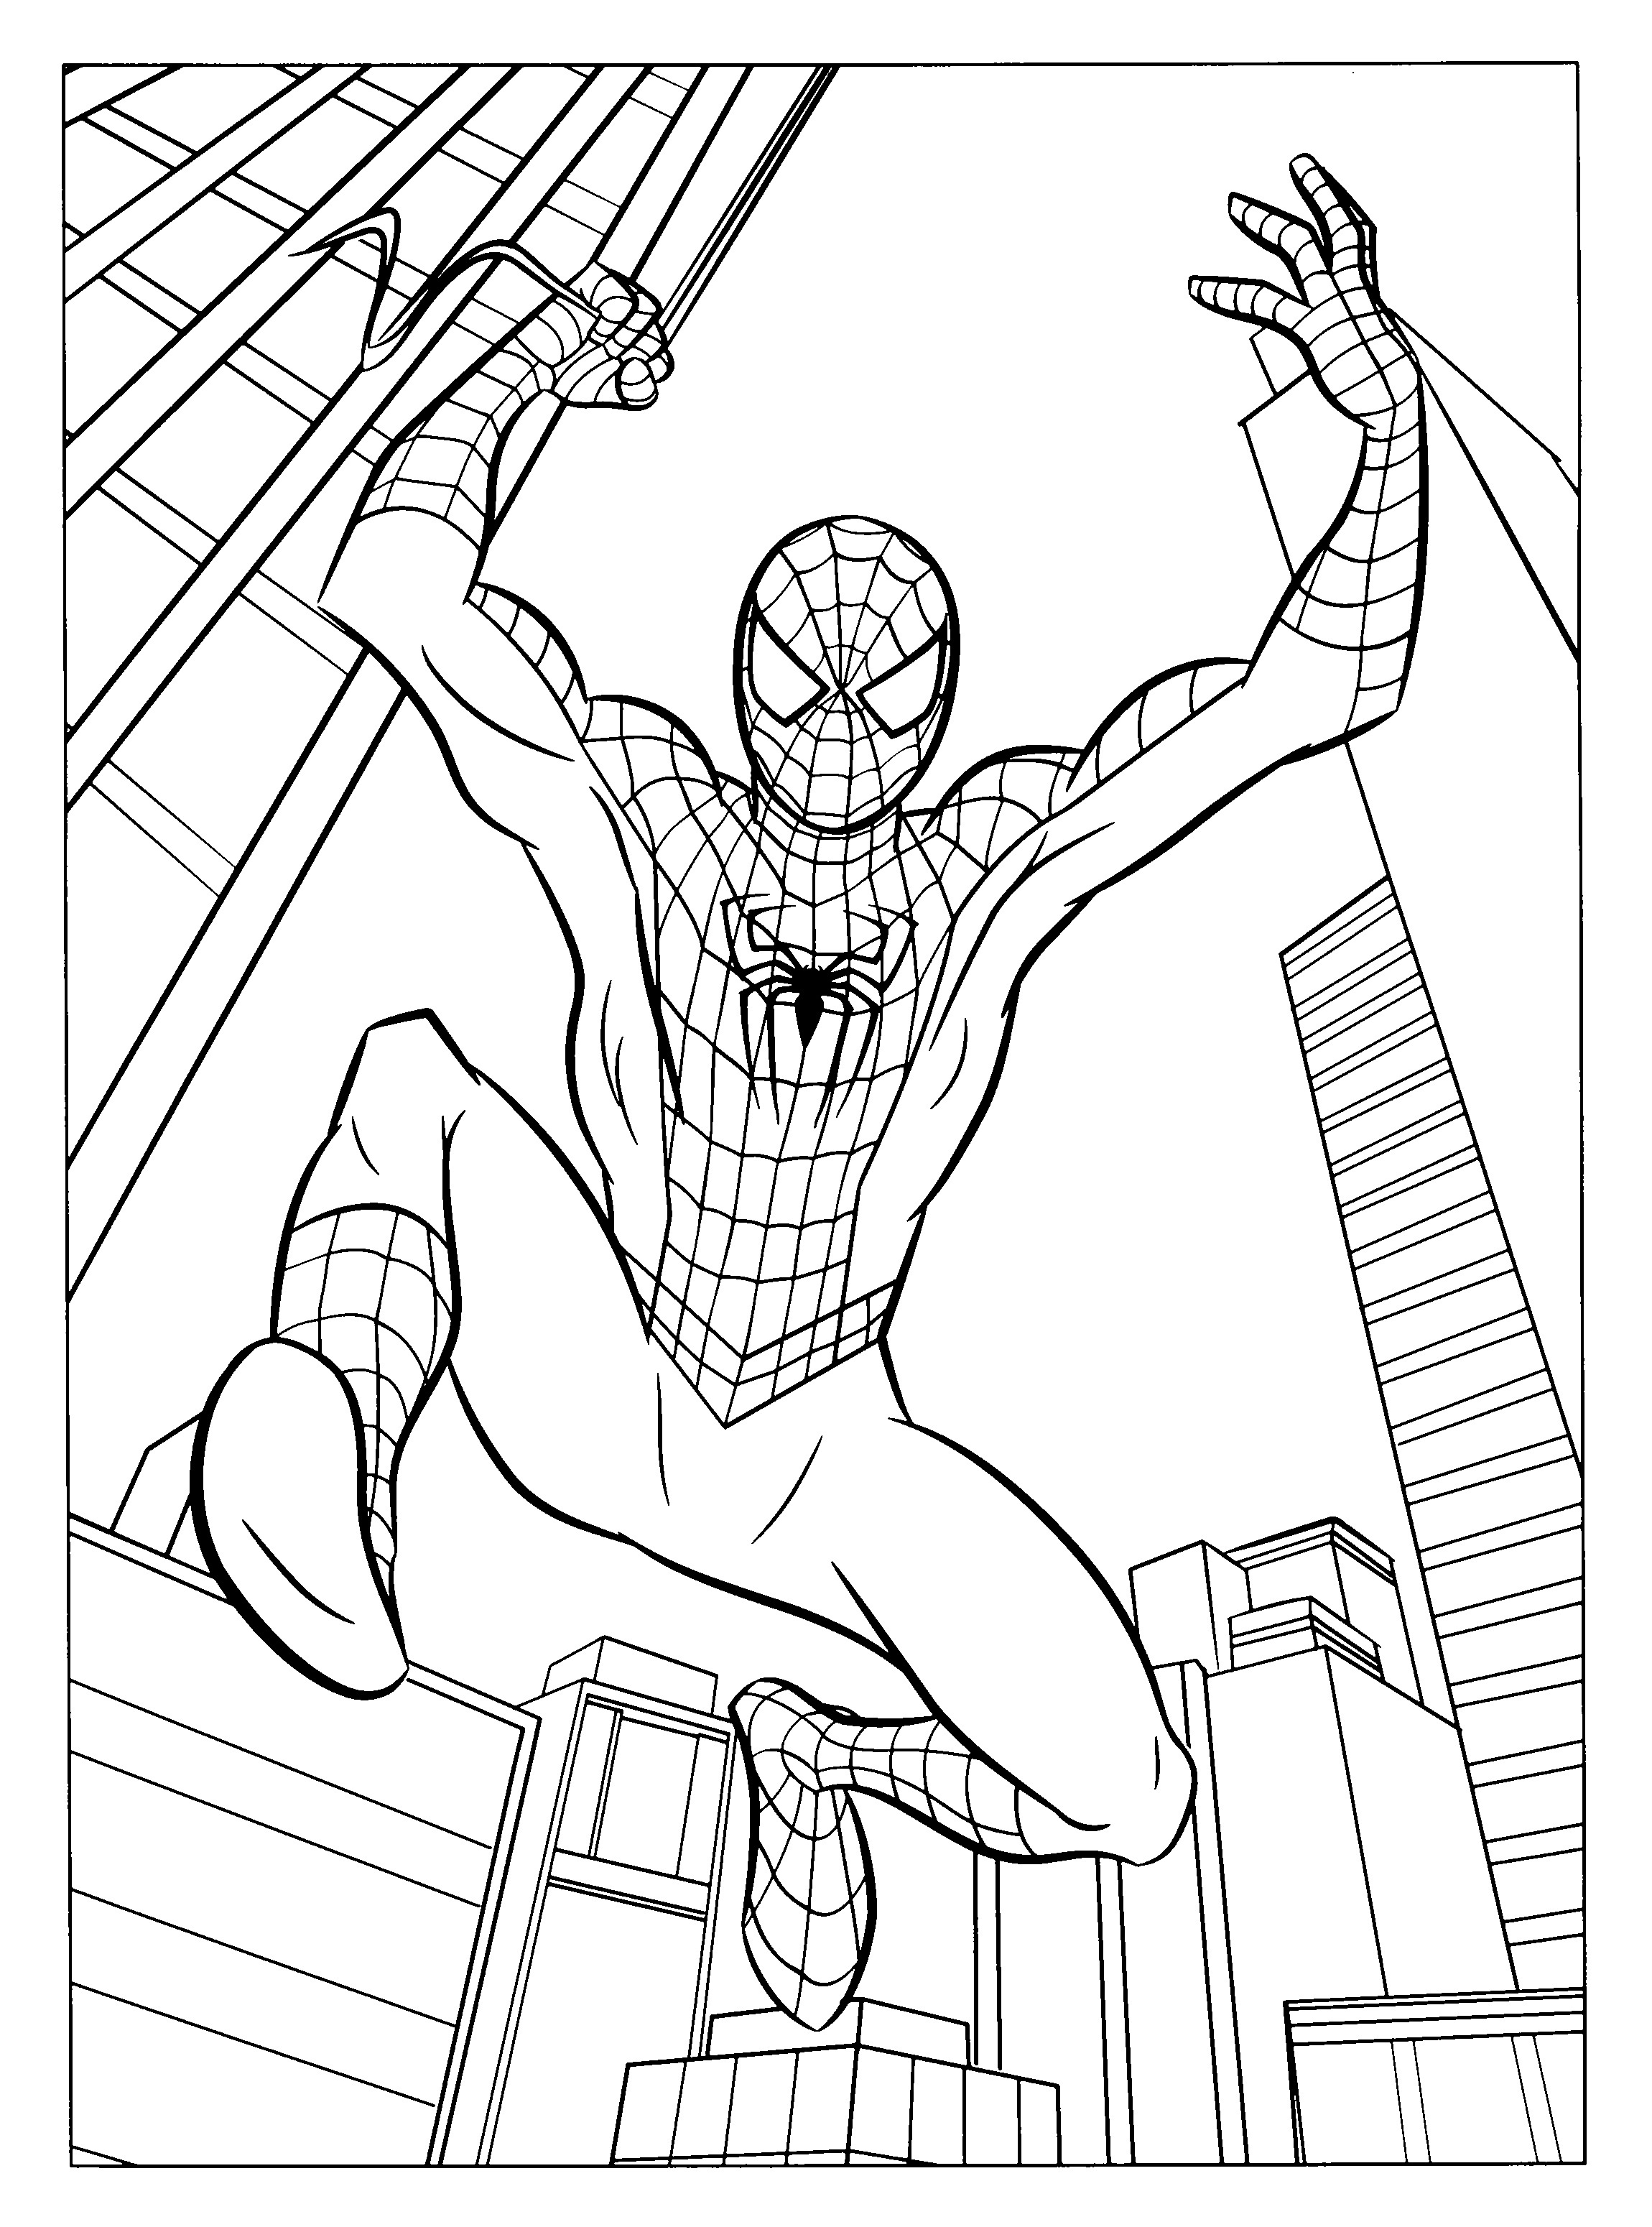 coloring pages of spiderman - Spiderman Coloring Pages Free